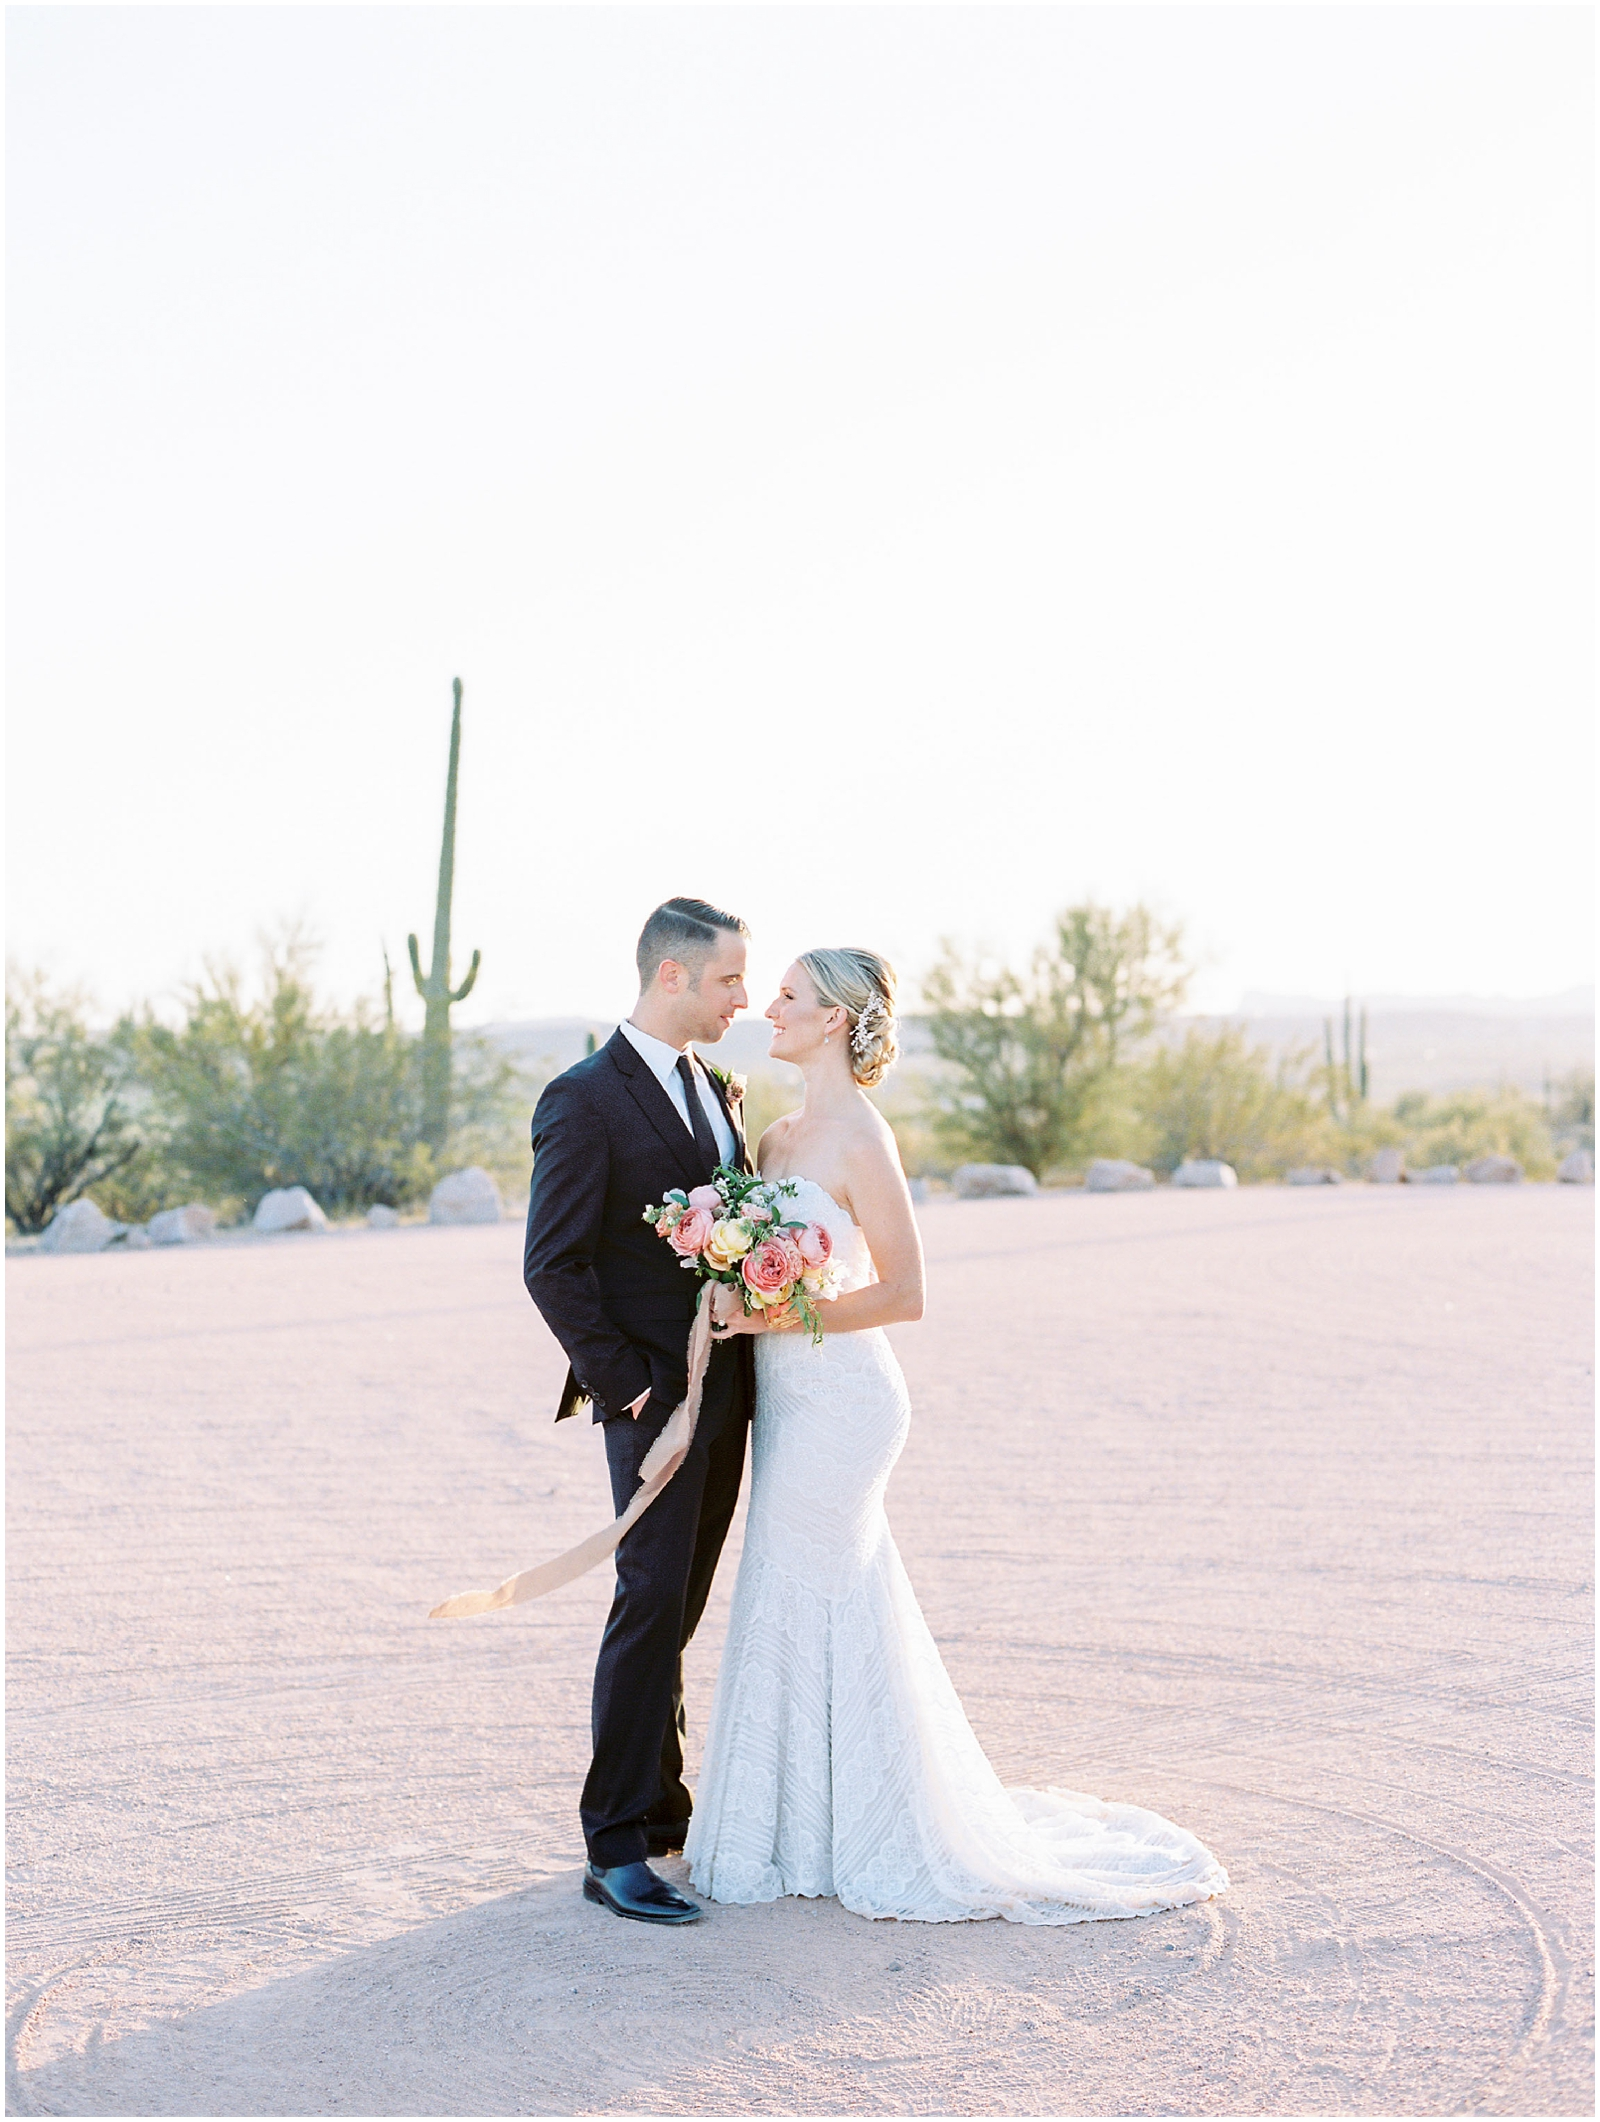 LA PUESTA DEL SOL WEDDING INSPIRATION